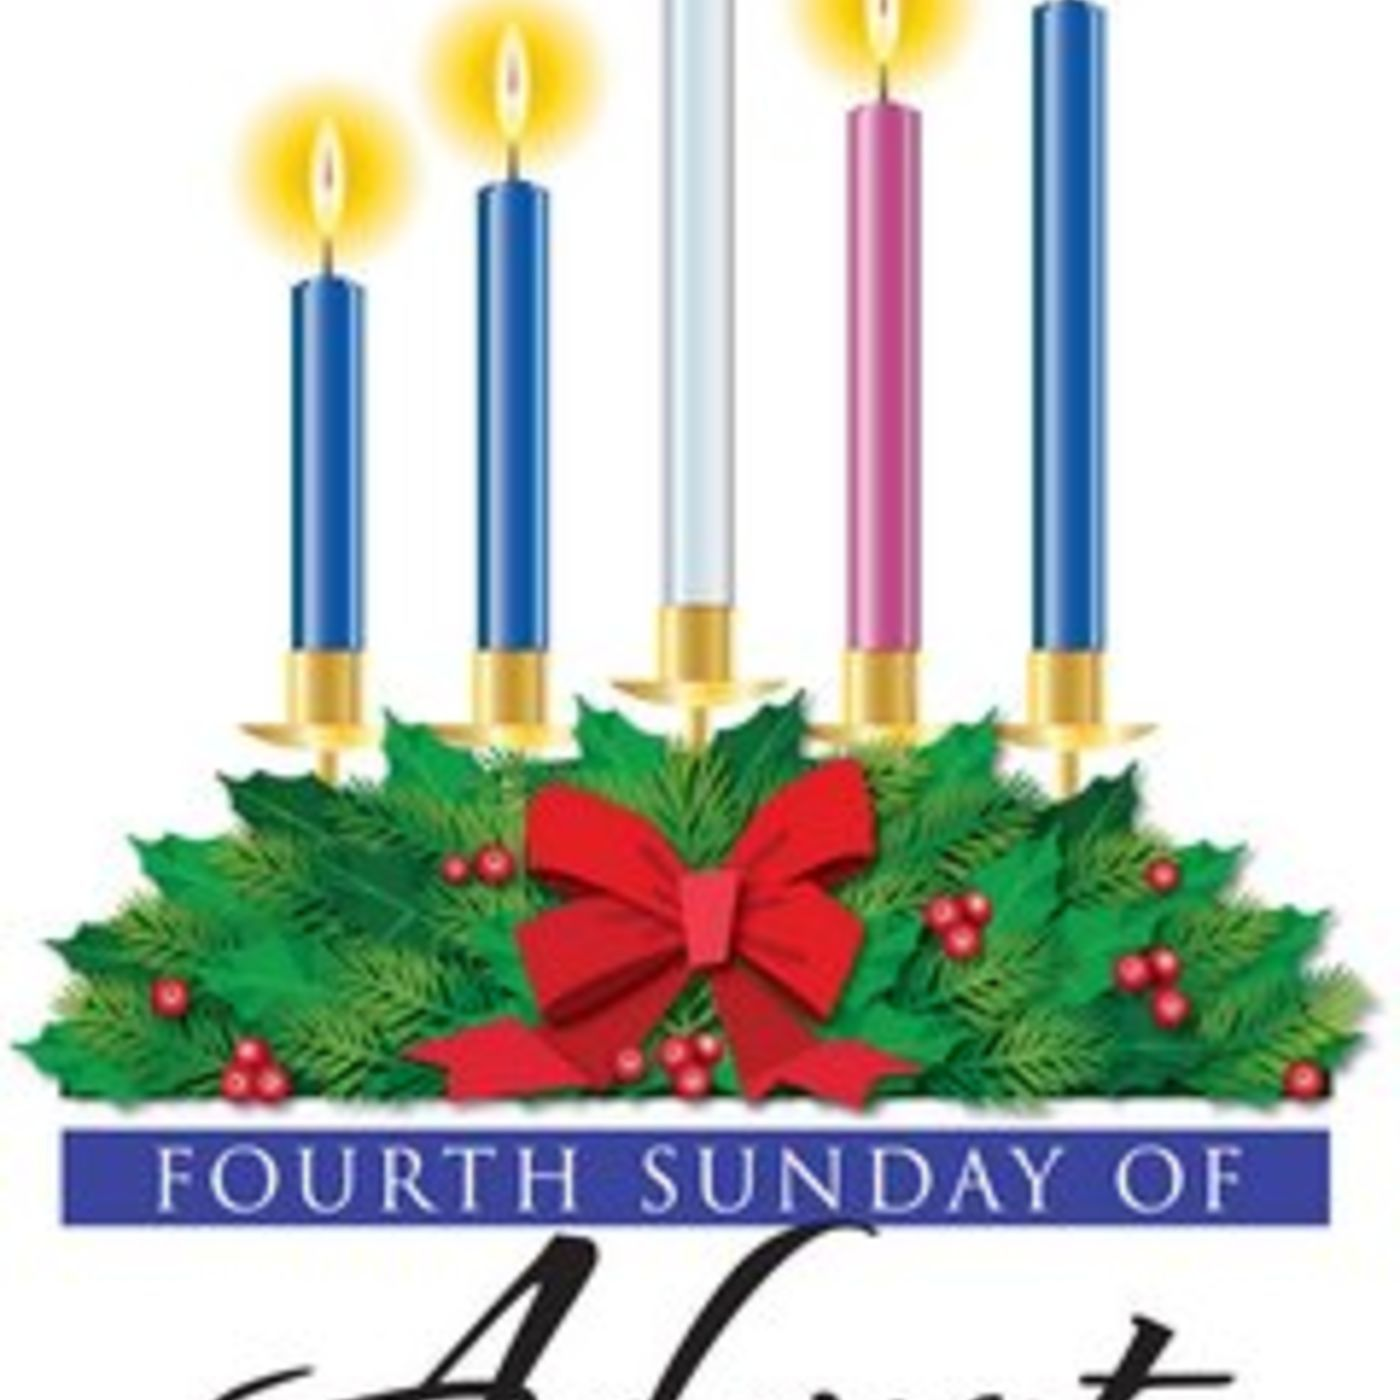 Christmas Eve Service - Fourth Sunday of Advent - Adulation